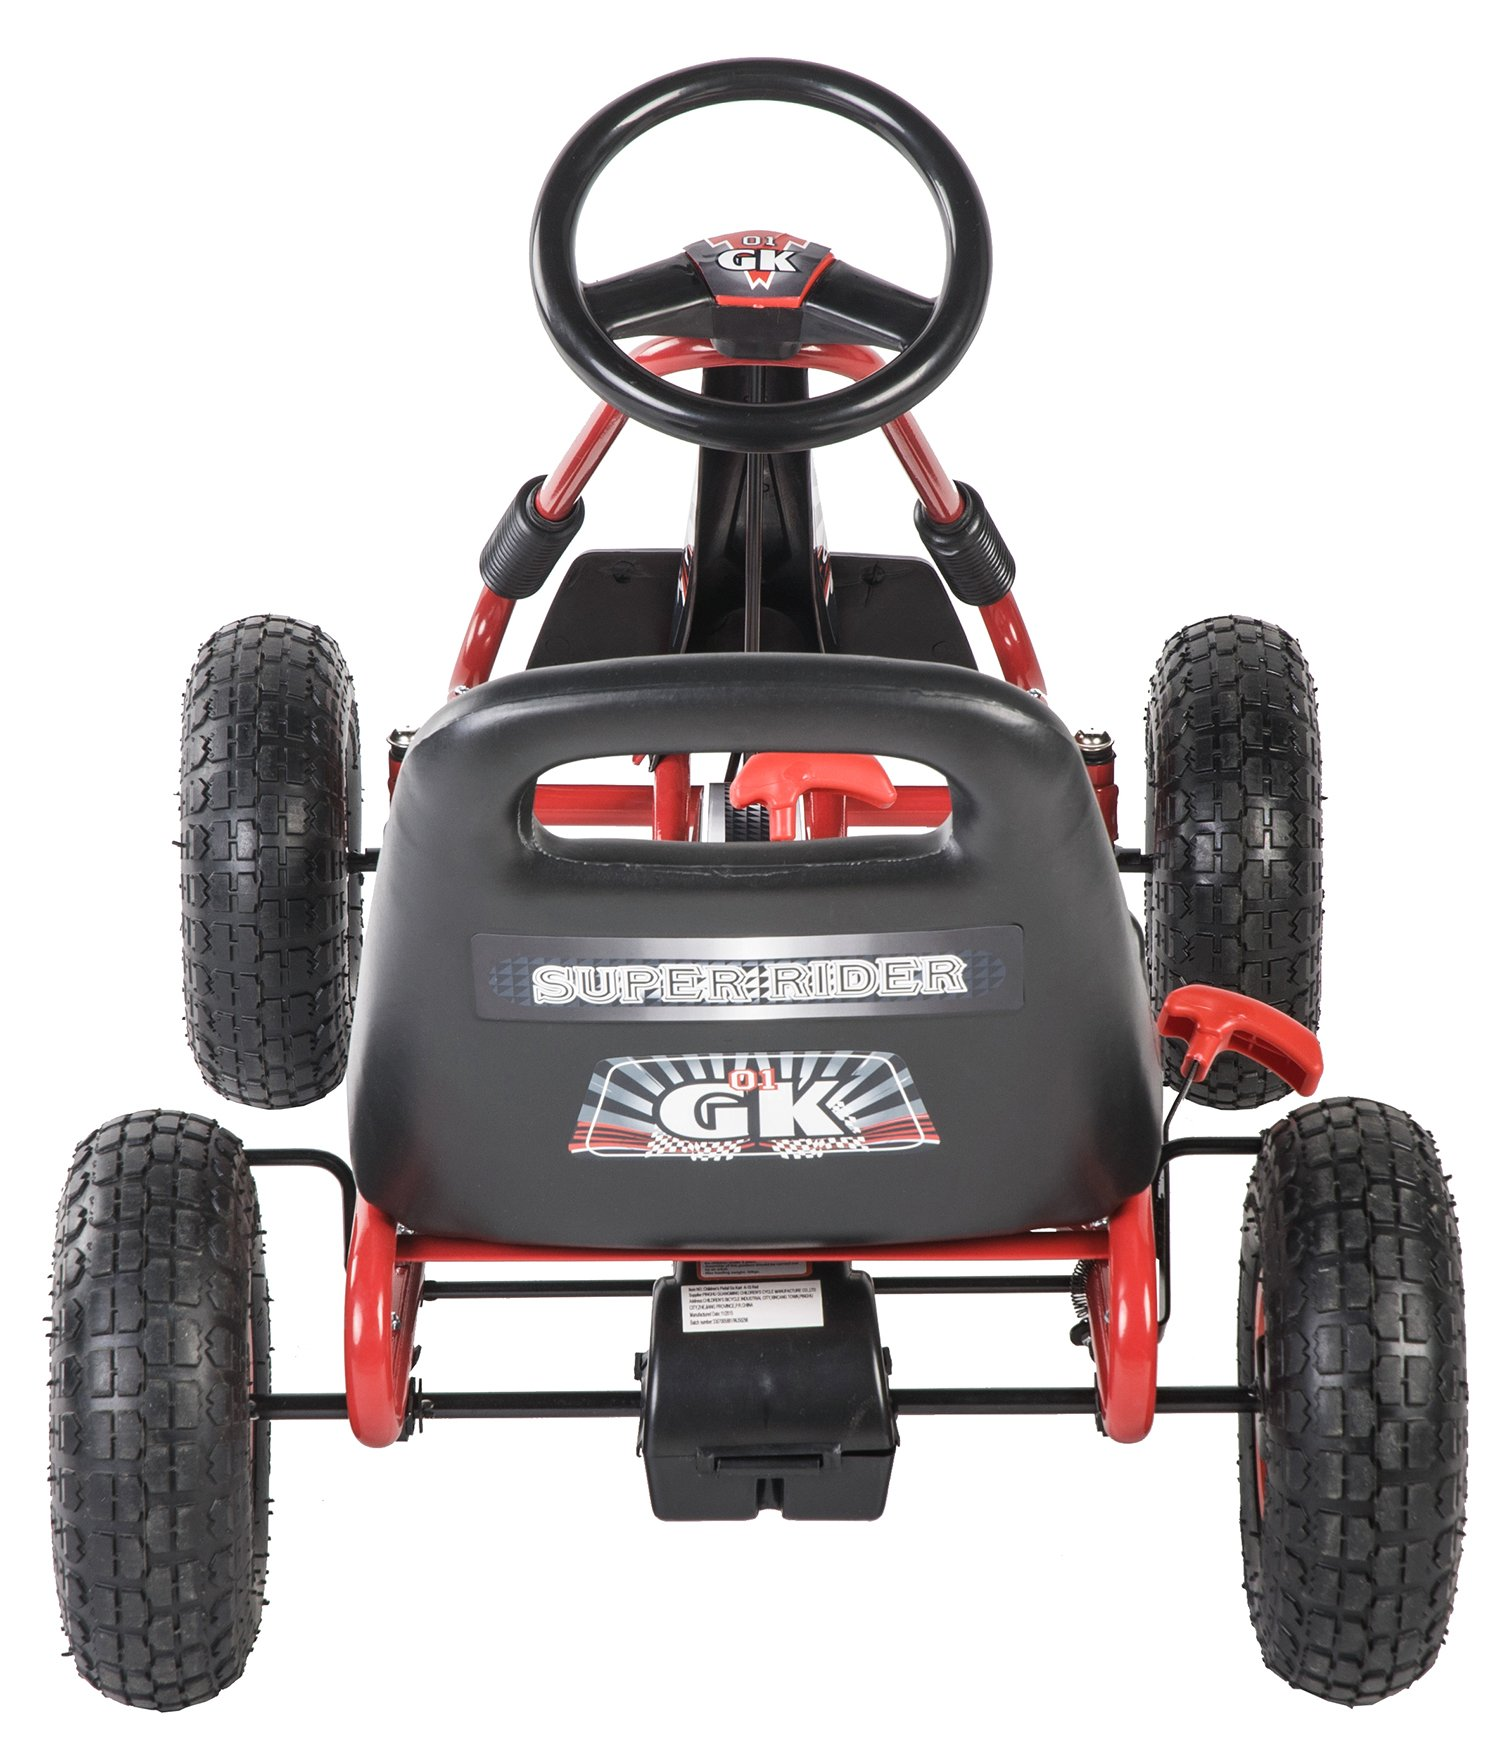 Merax Childrens Racing-Style Ride On Toy Pedal Car Go Kart by Merax